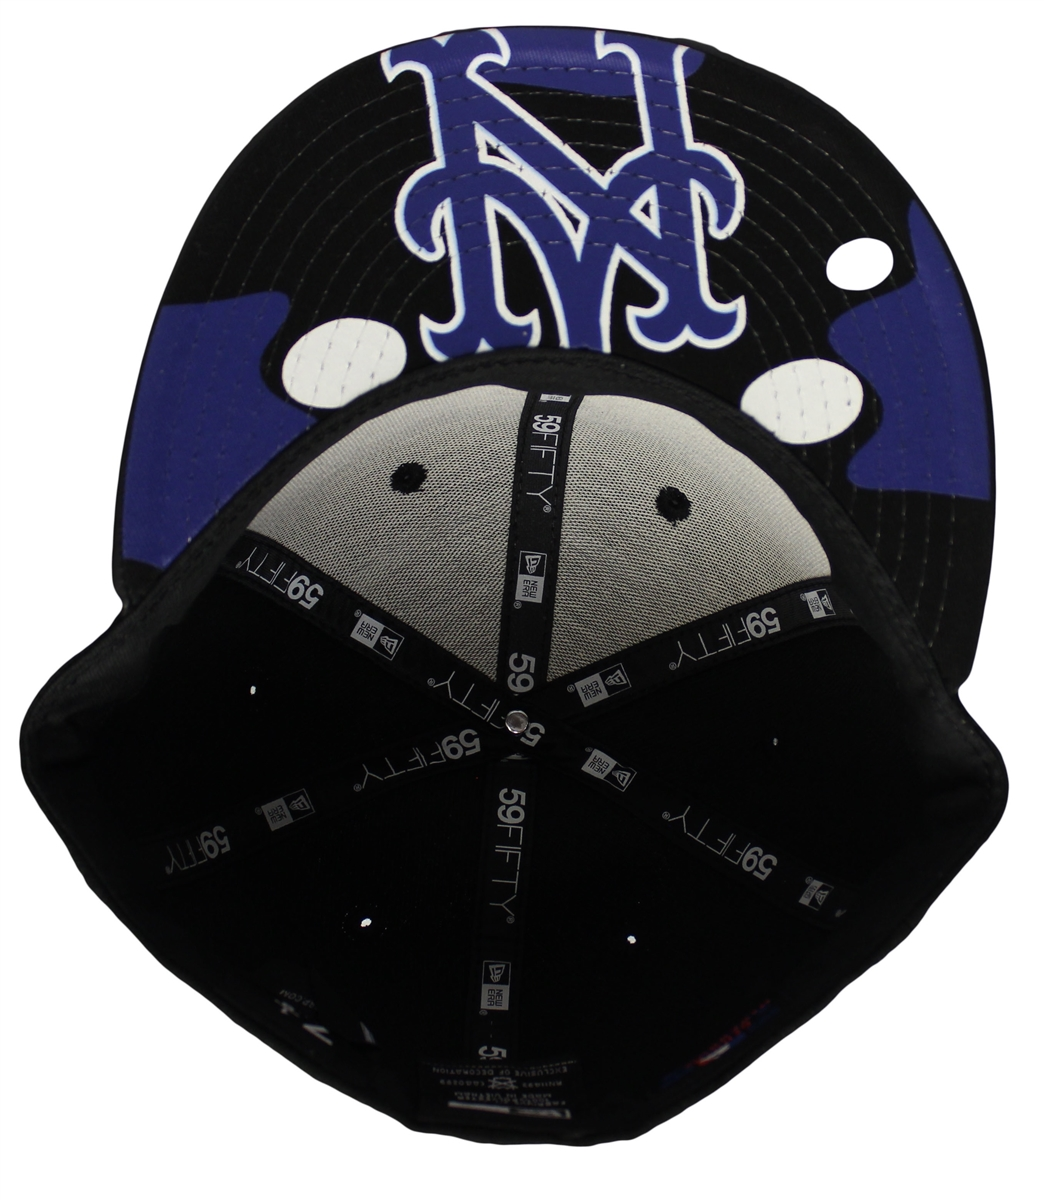 bf841a67c1df New Era 59Fifty Space Jam Air Jordans 11 New York Mets Black   Blue Fitted  Hat Cap